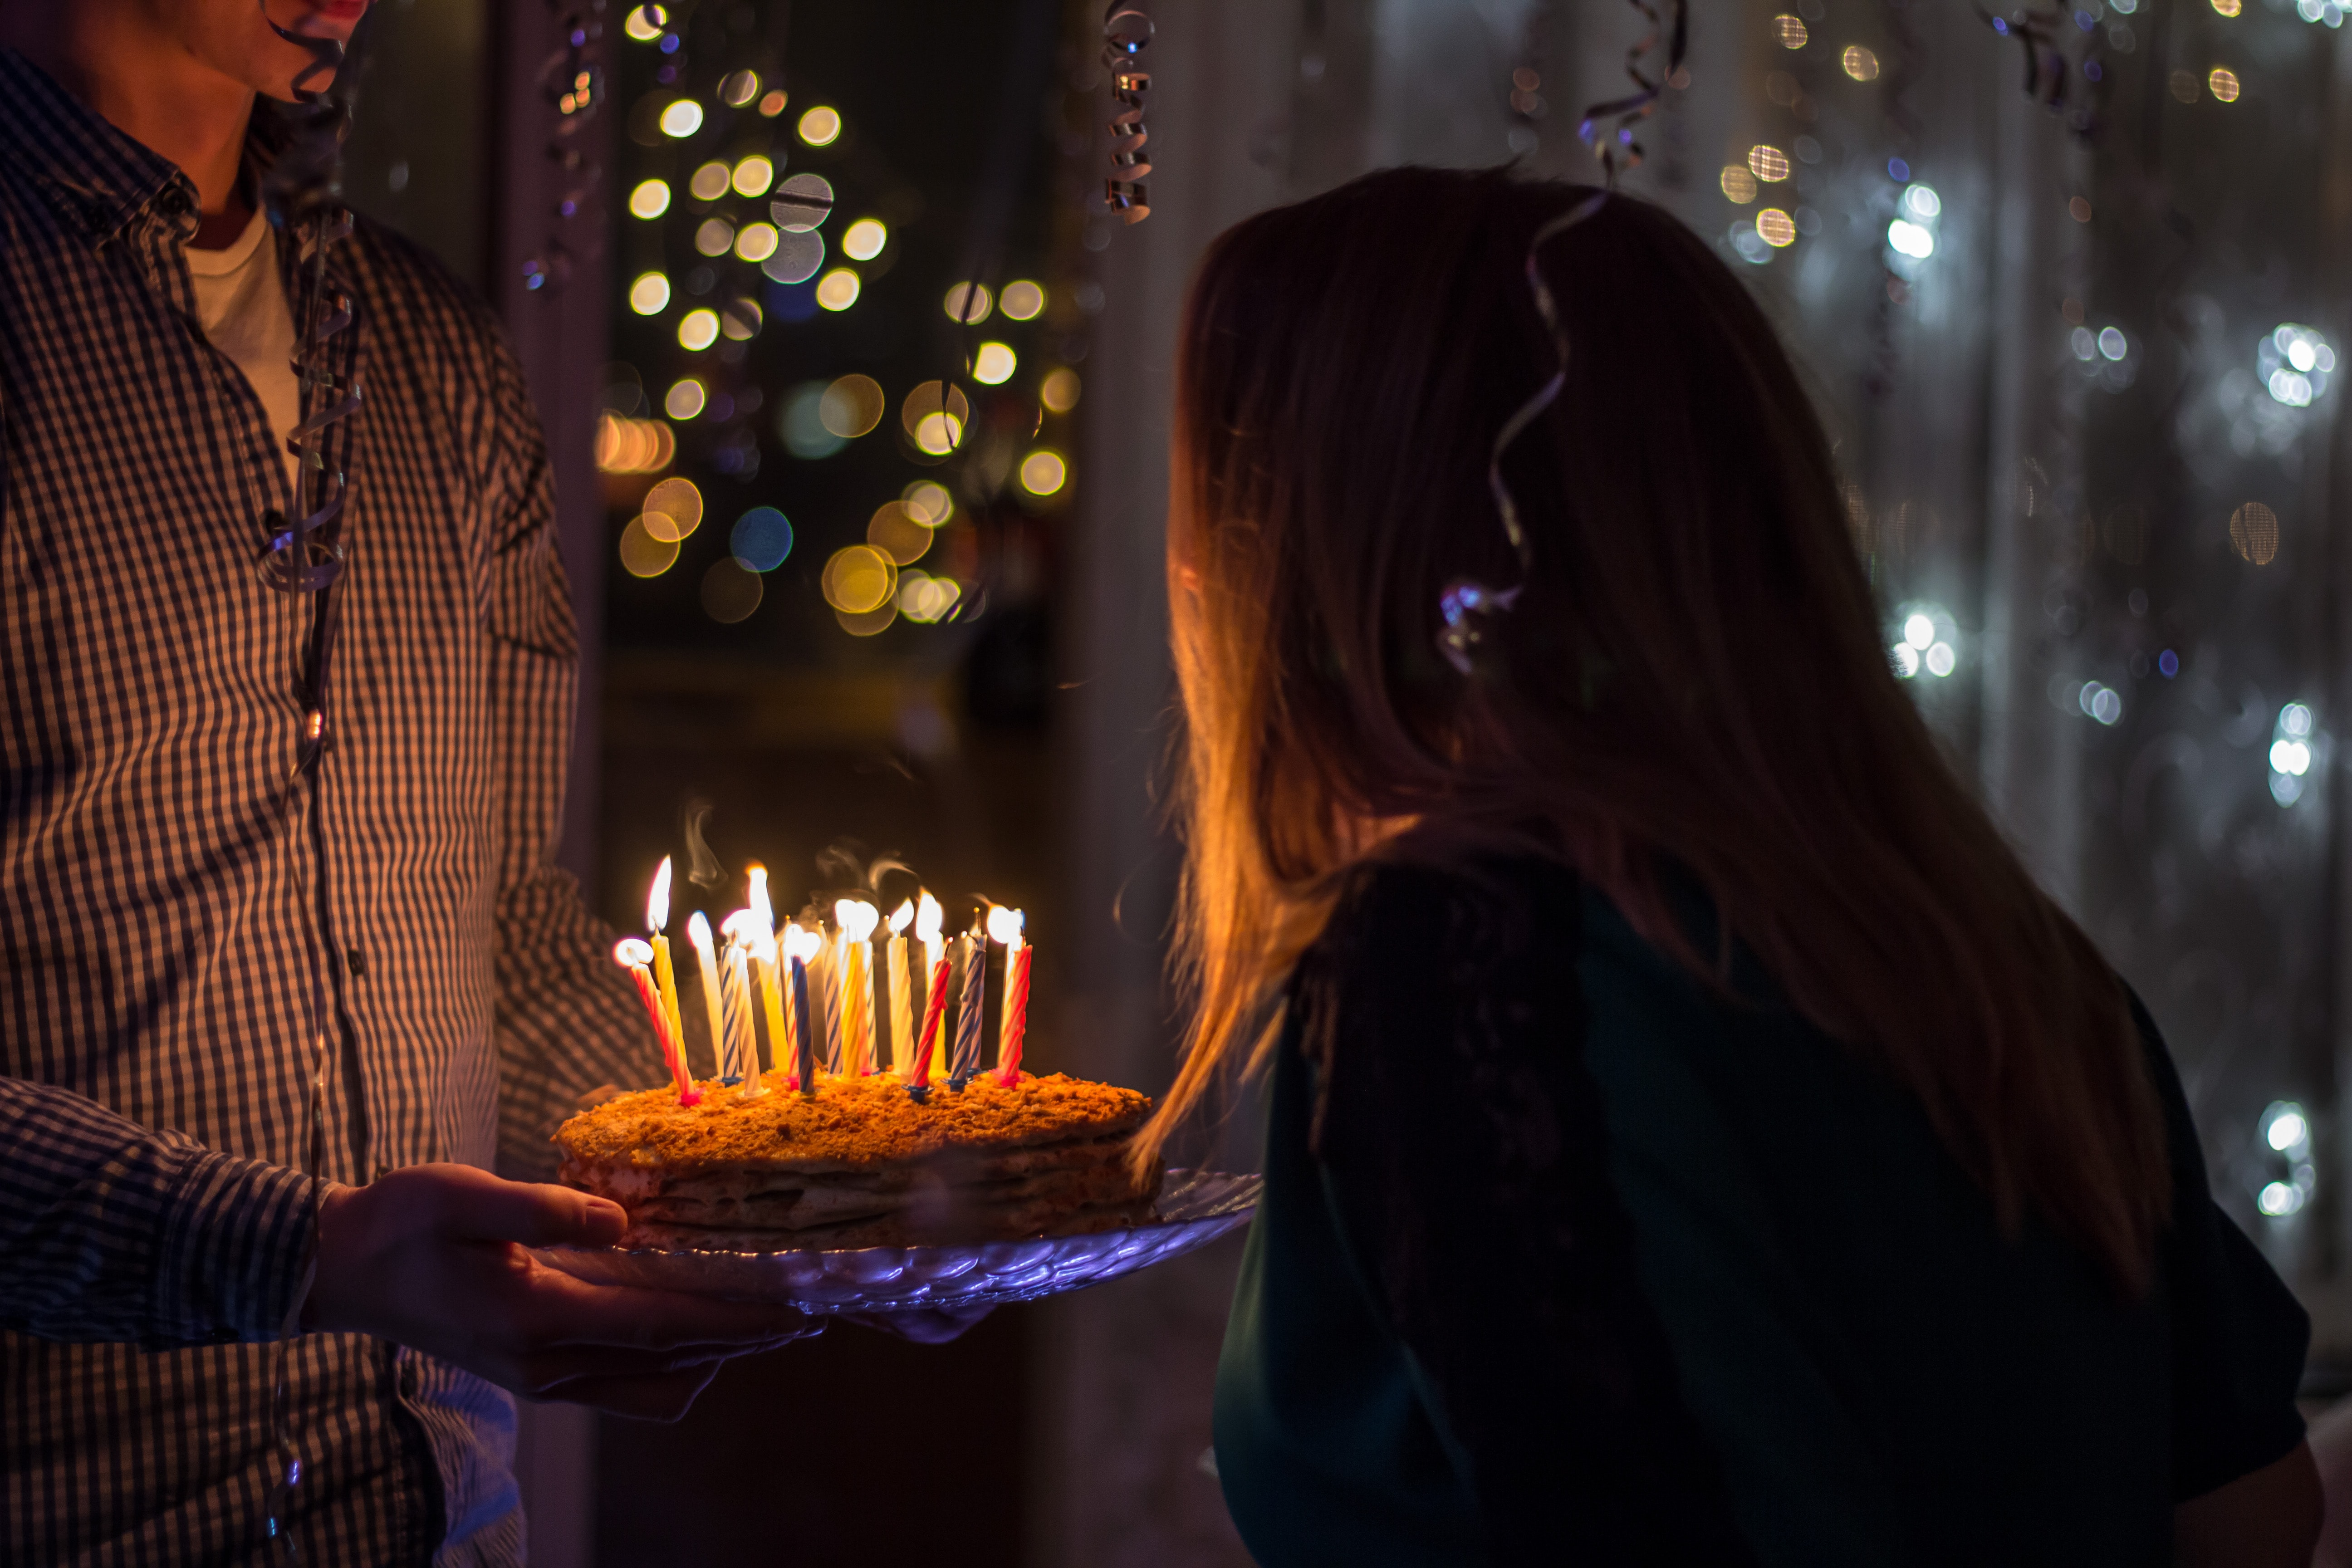 A man bringing a birthday cake with candles to a woman in a room filled with balloons